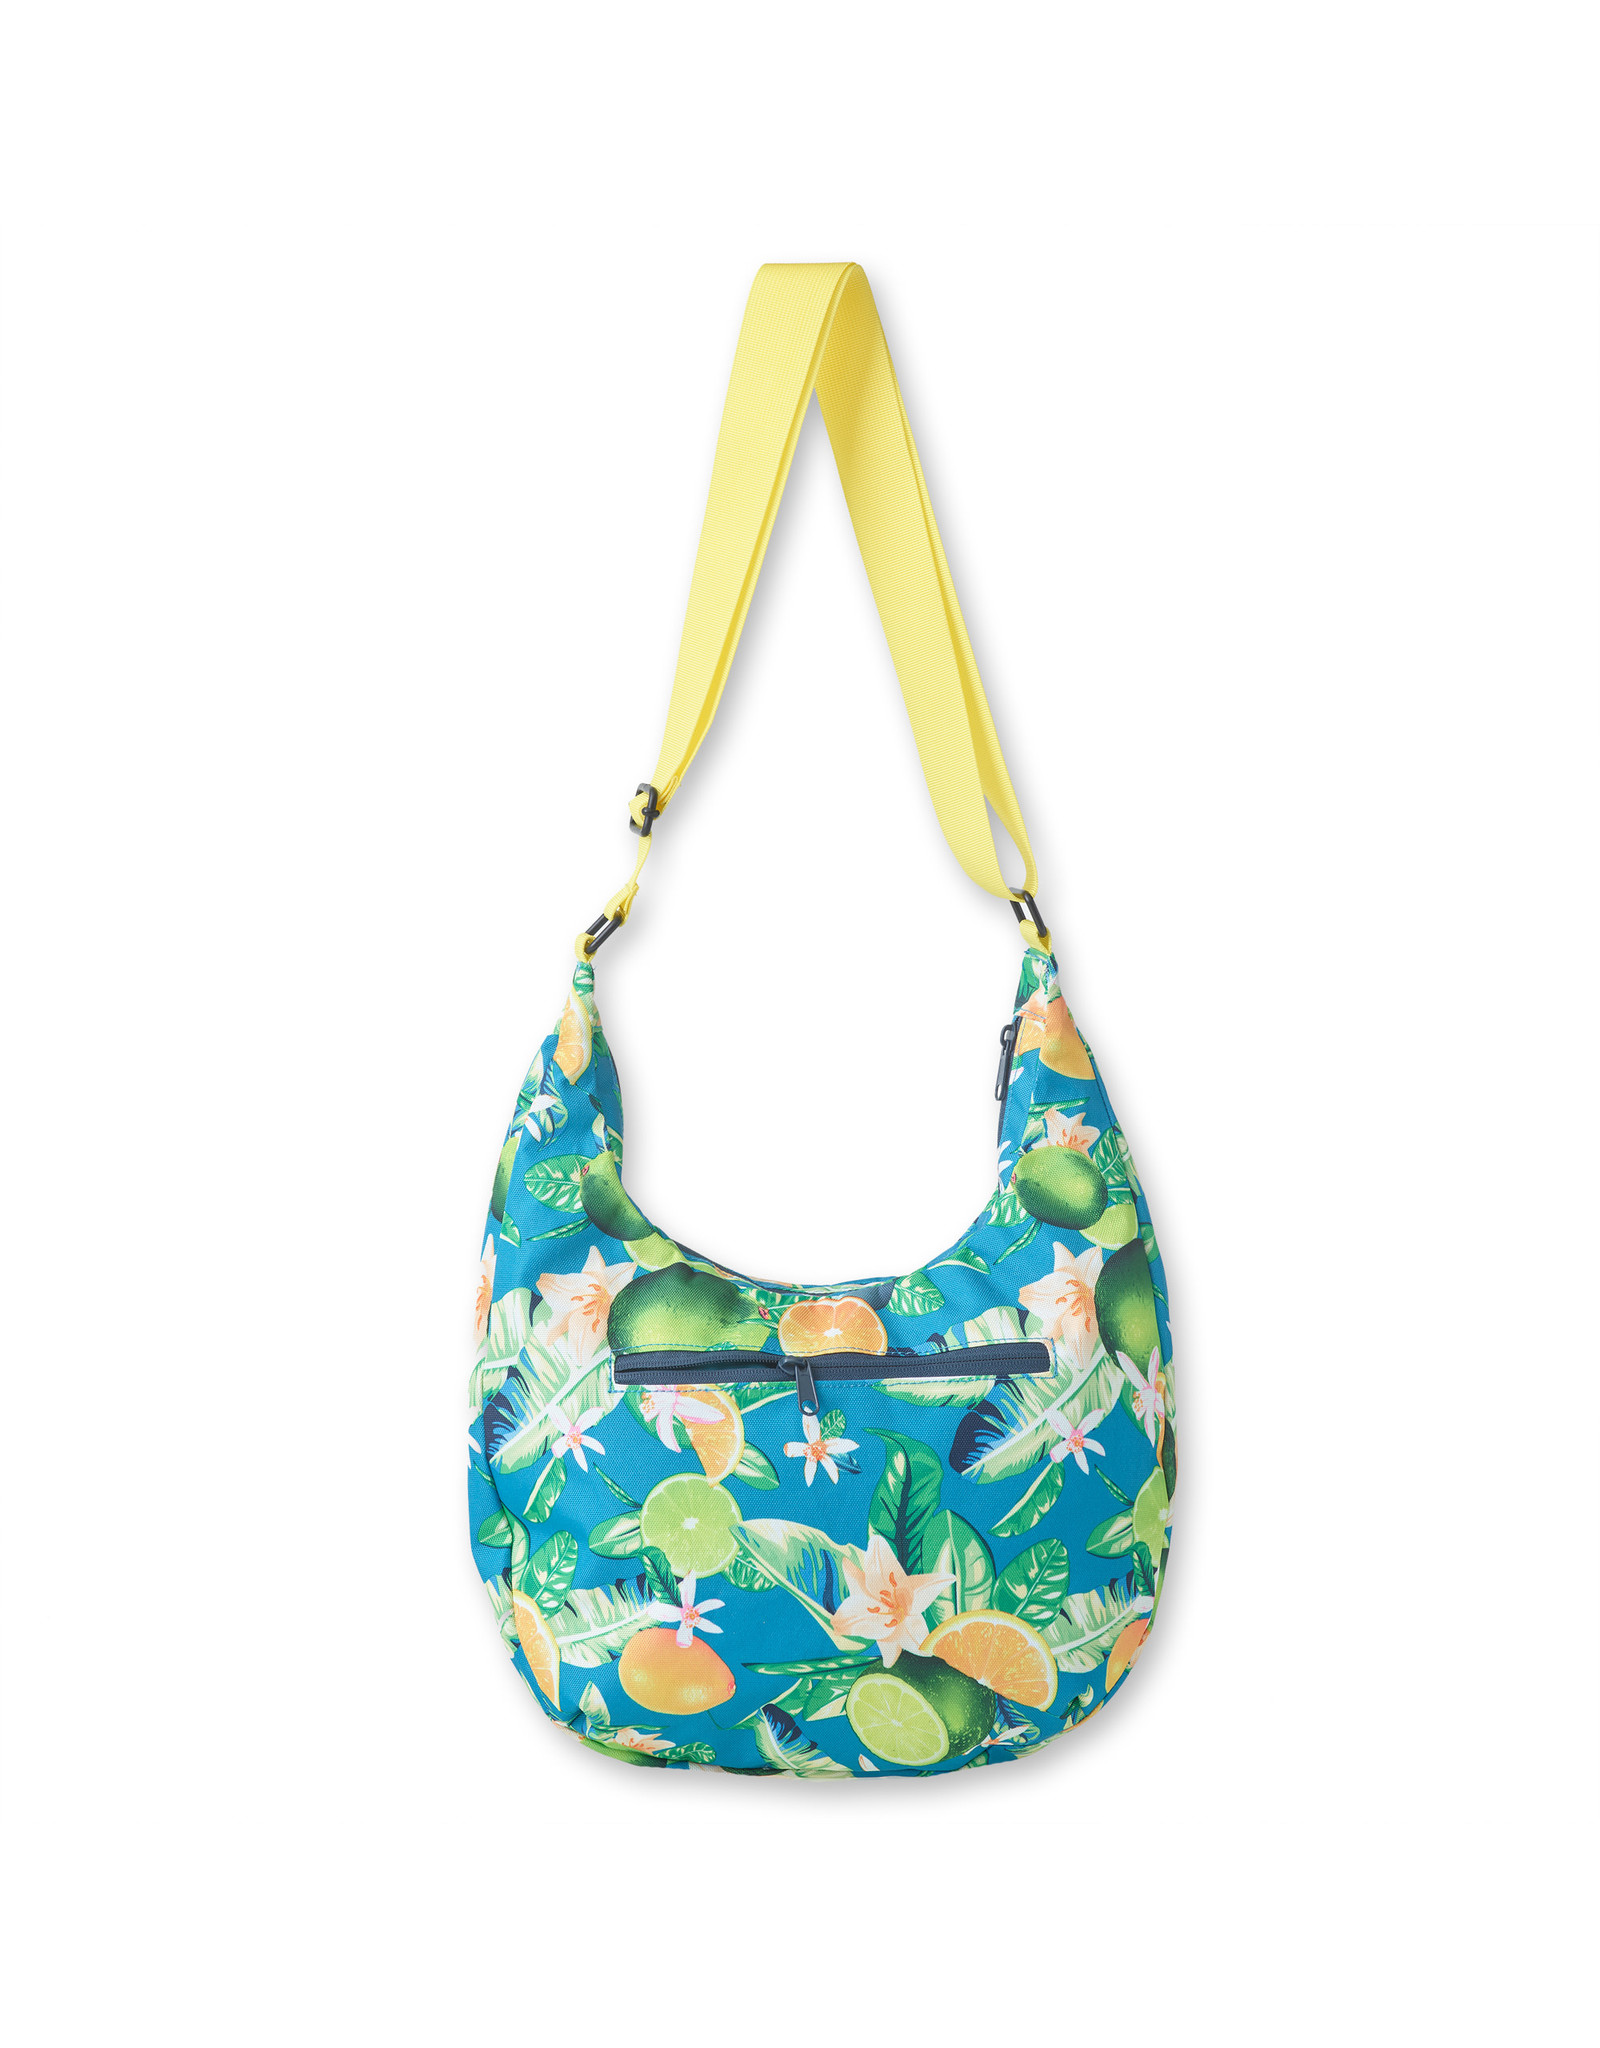 Kavu Singapore Satchel - Ocean Citrus